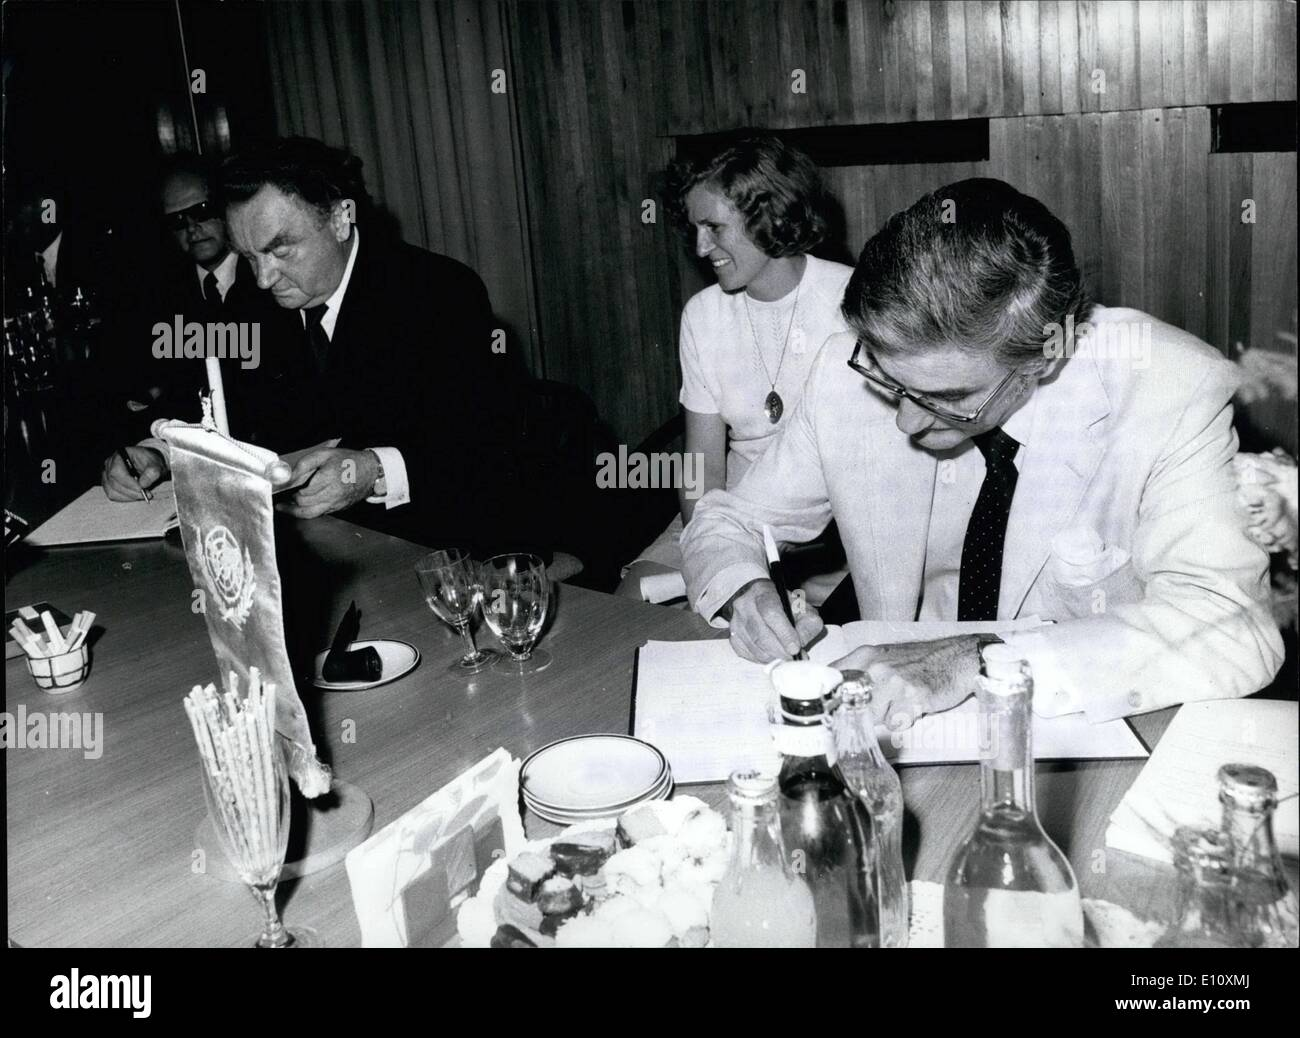 Aug. 08, 1974 - UNO Help To Medical Appliance Sterlization. Budapest: Dr.Gyorey Osztrovszky, President of Hungary's National Atomic Energy Committee and L.R. Bloch, the European Manager of the UNO Development programme / UNDP/ signed a contract here today, providing for an institute to set up in Debregen, East Hungary, for medical instruments and appliances to be sterilized under the effect of high-capacity Cobalt-60 ionizing rays which provide a much higher degree of security than so far known sterilizing methods by means of traditional chemical or heat treatment - Stock Image